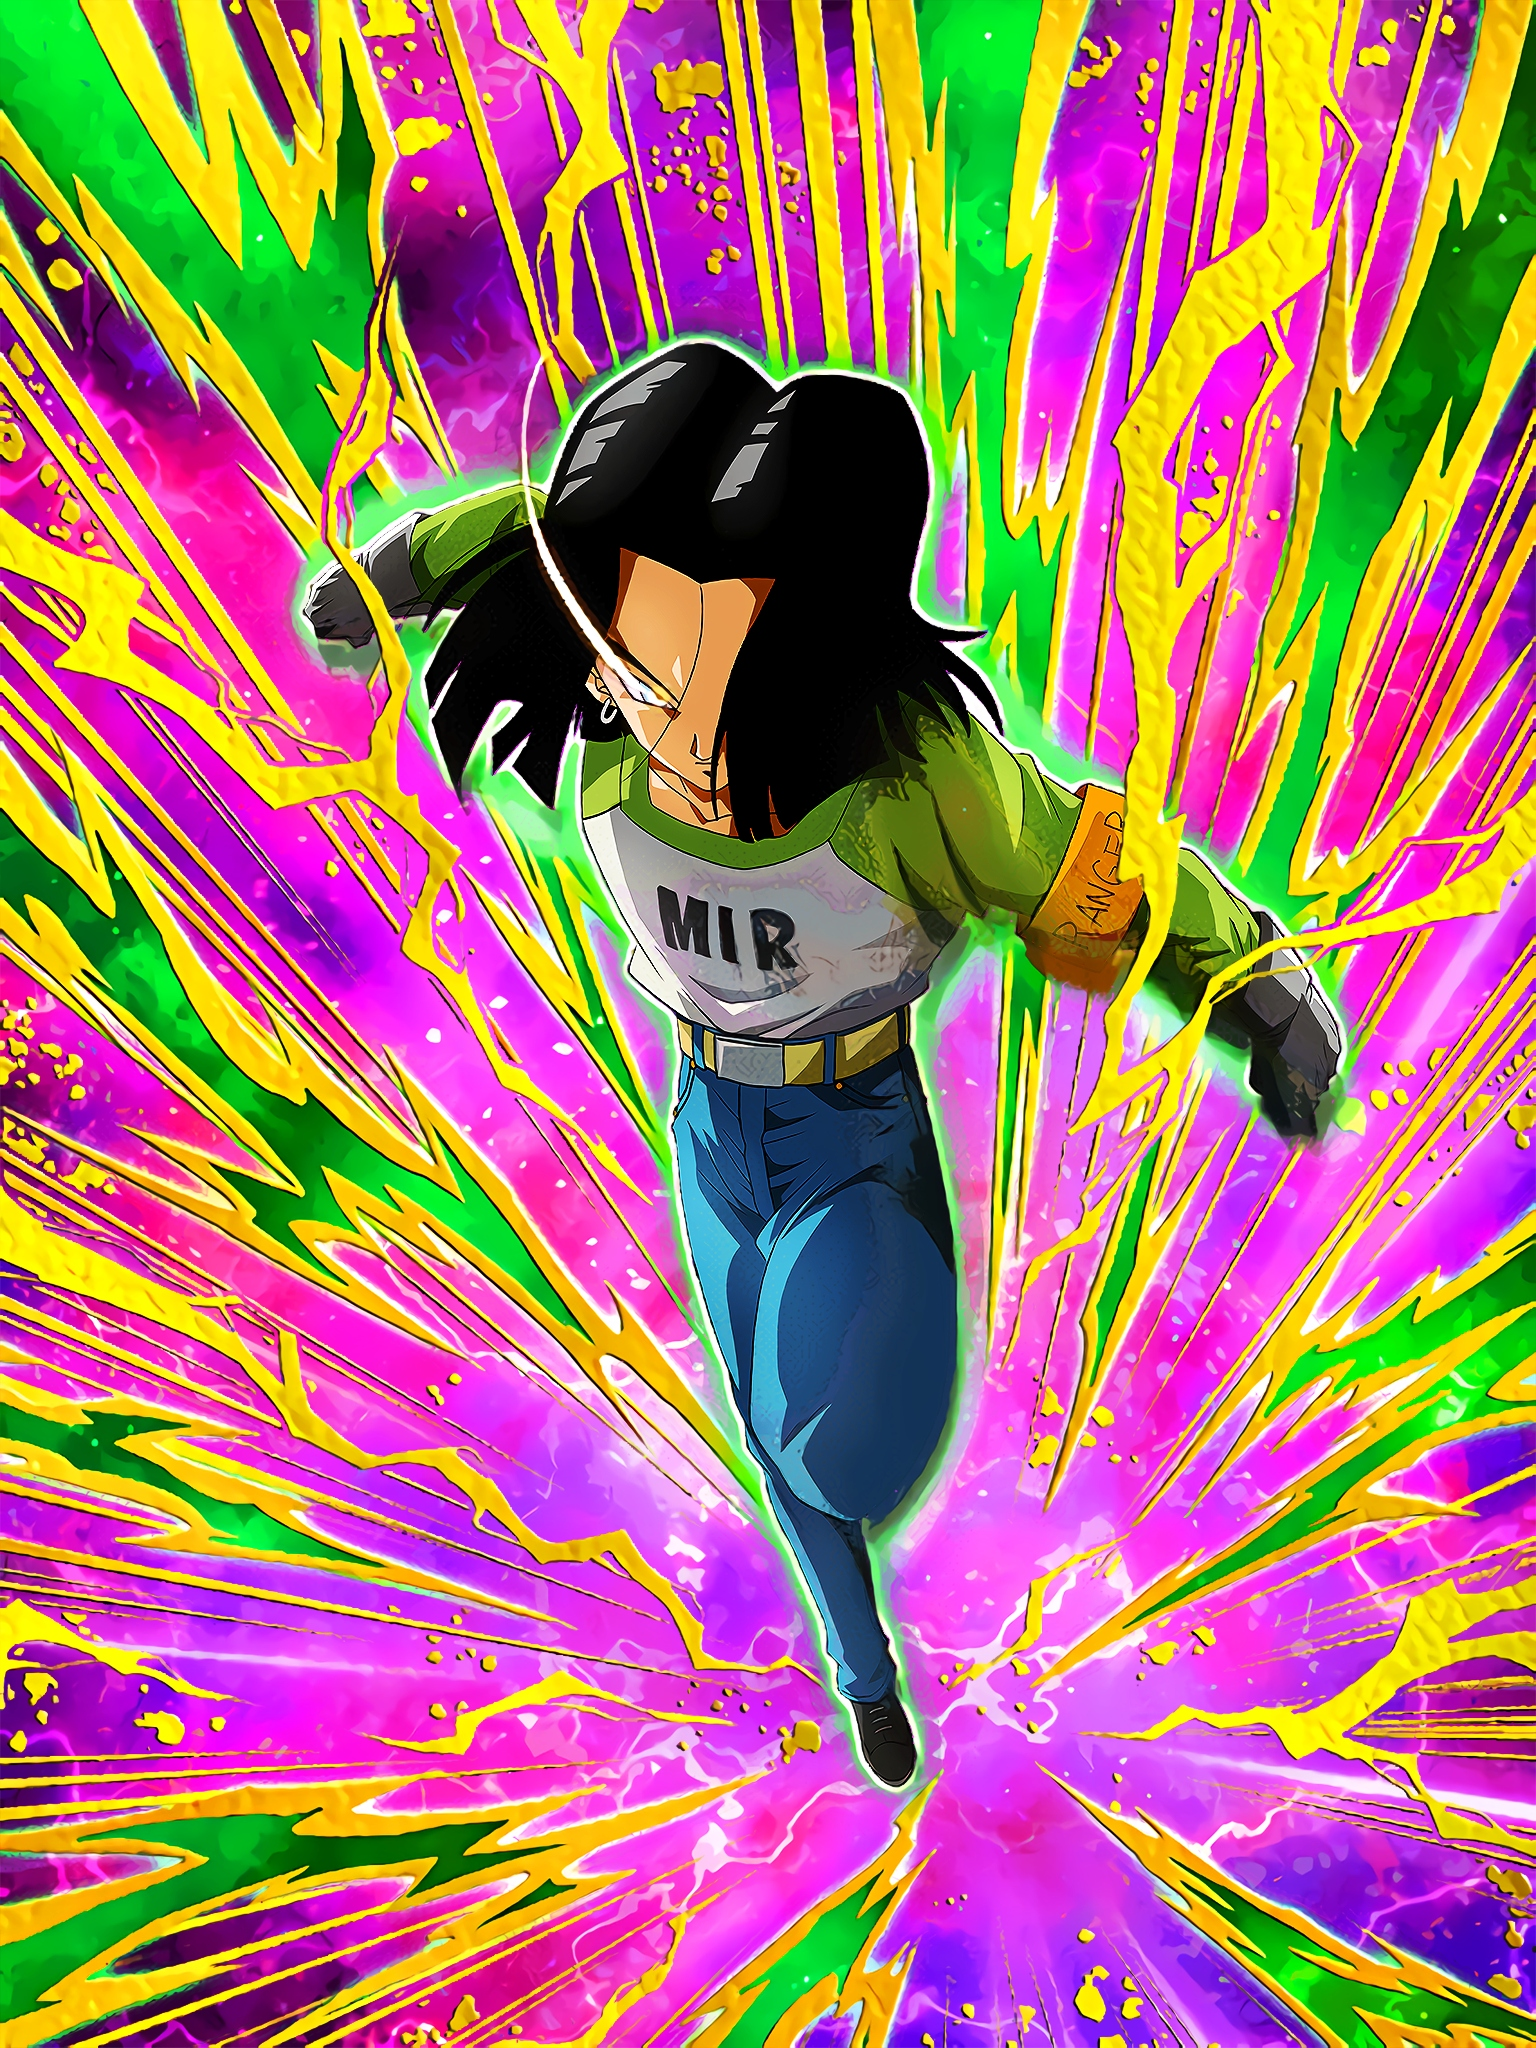 Survival with the Dead Power Android 17 Art (Dragon Ball Z Dokkan Battle).jpg